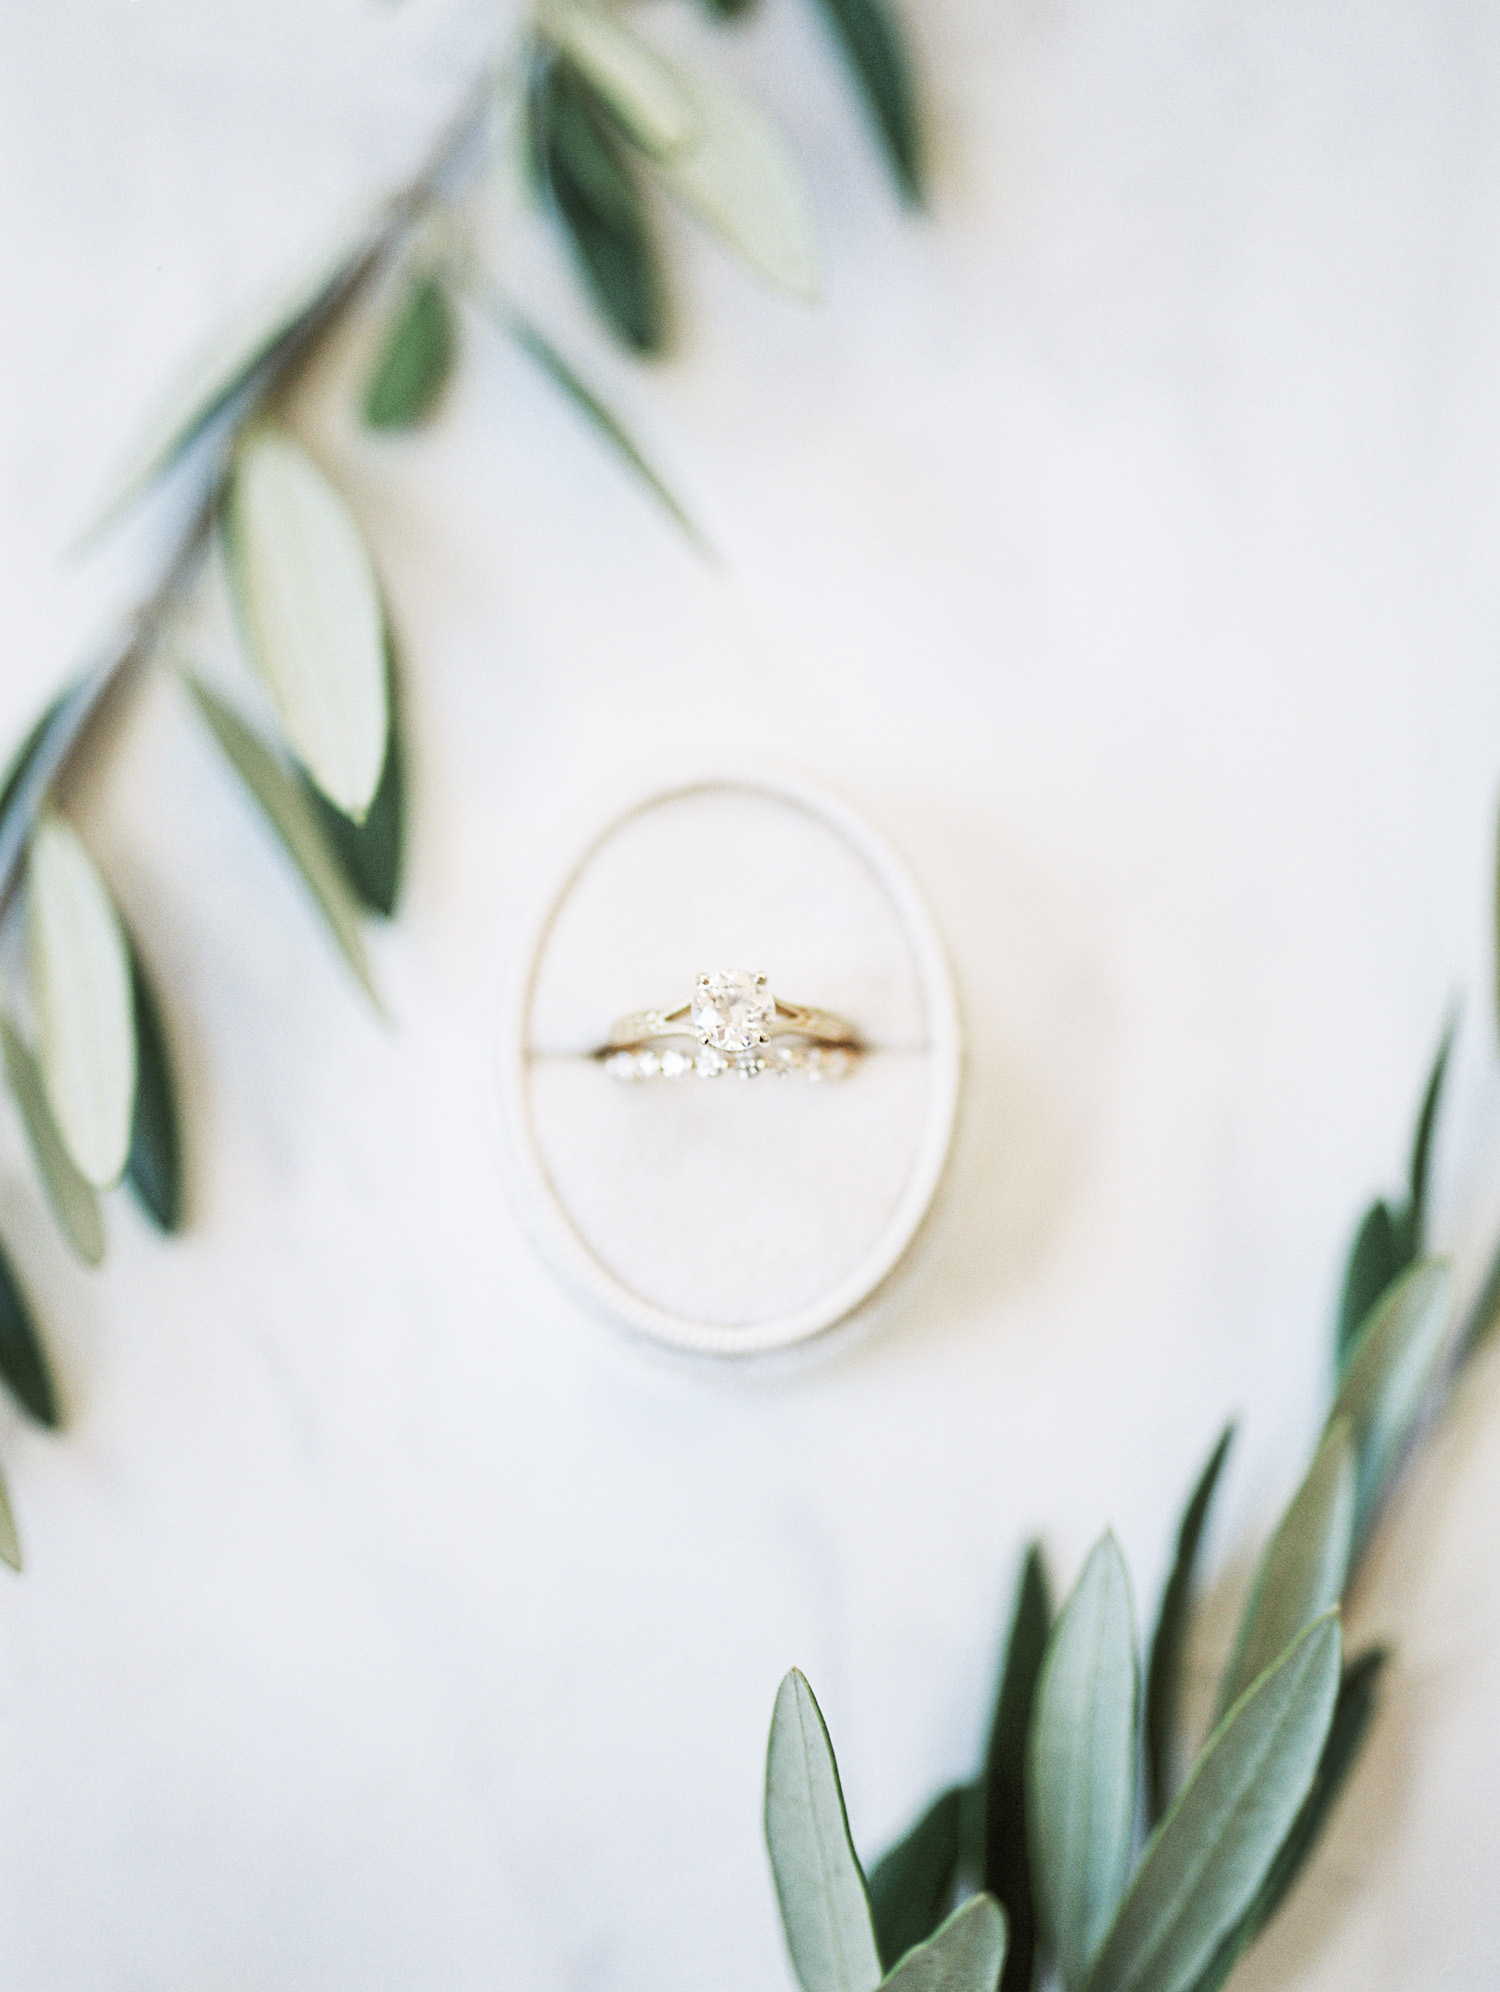 A gold engagement ring with a round diamond in an oval velvet ring box surrounded by olive leaves